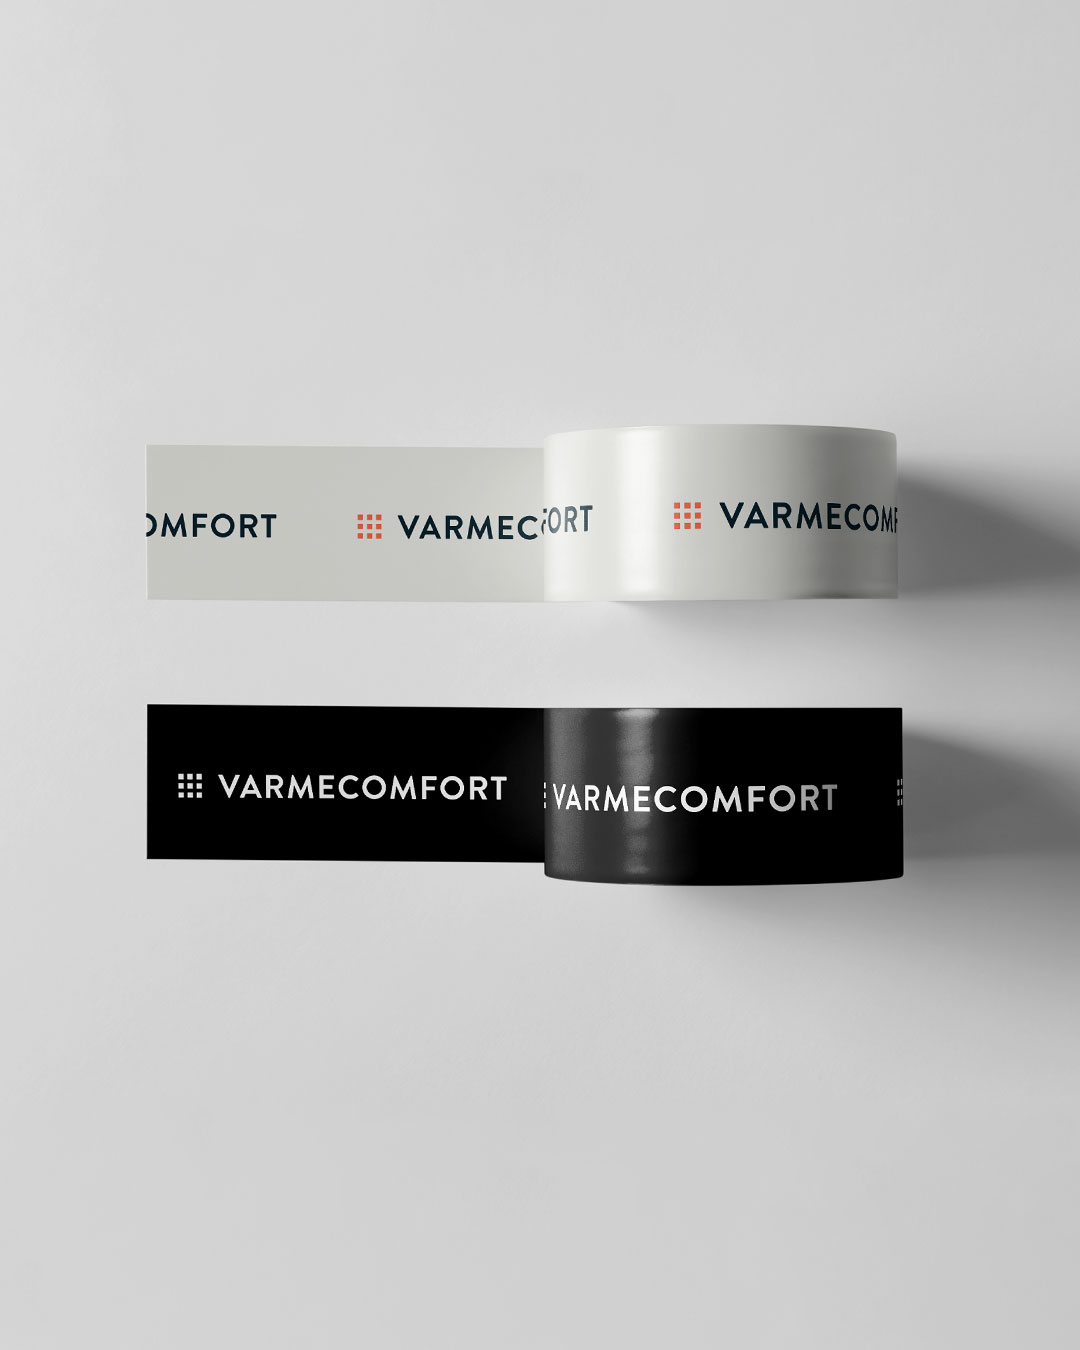 ohHello Design Project | Varmecomfort Identity - Example i Design Manual